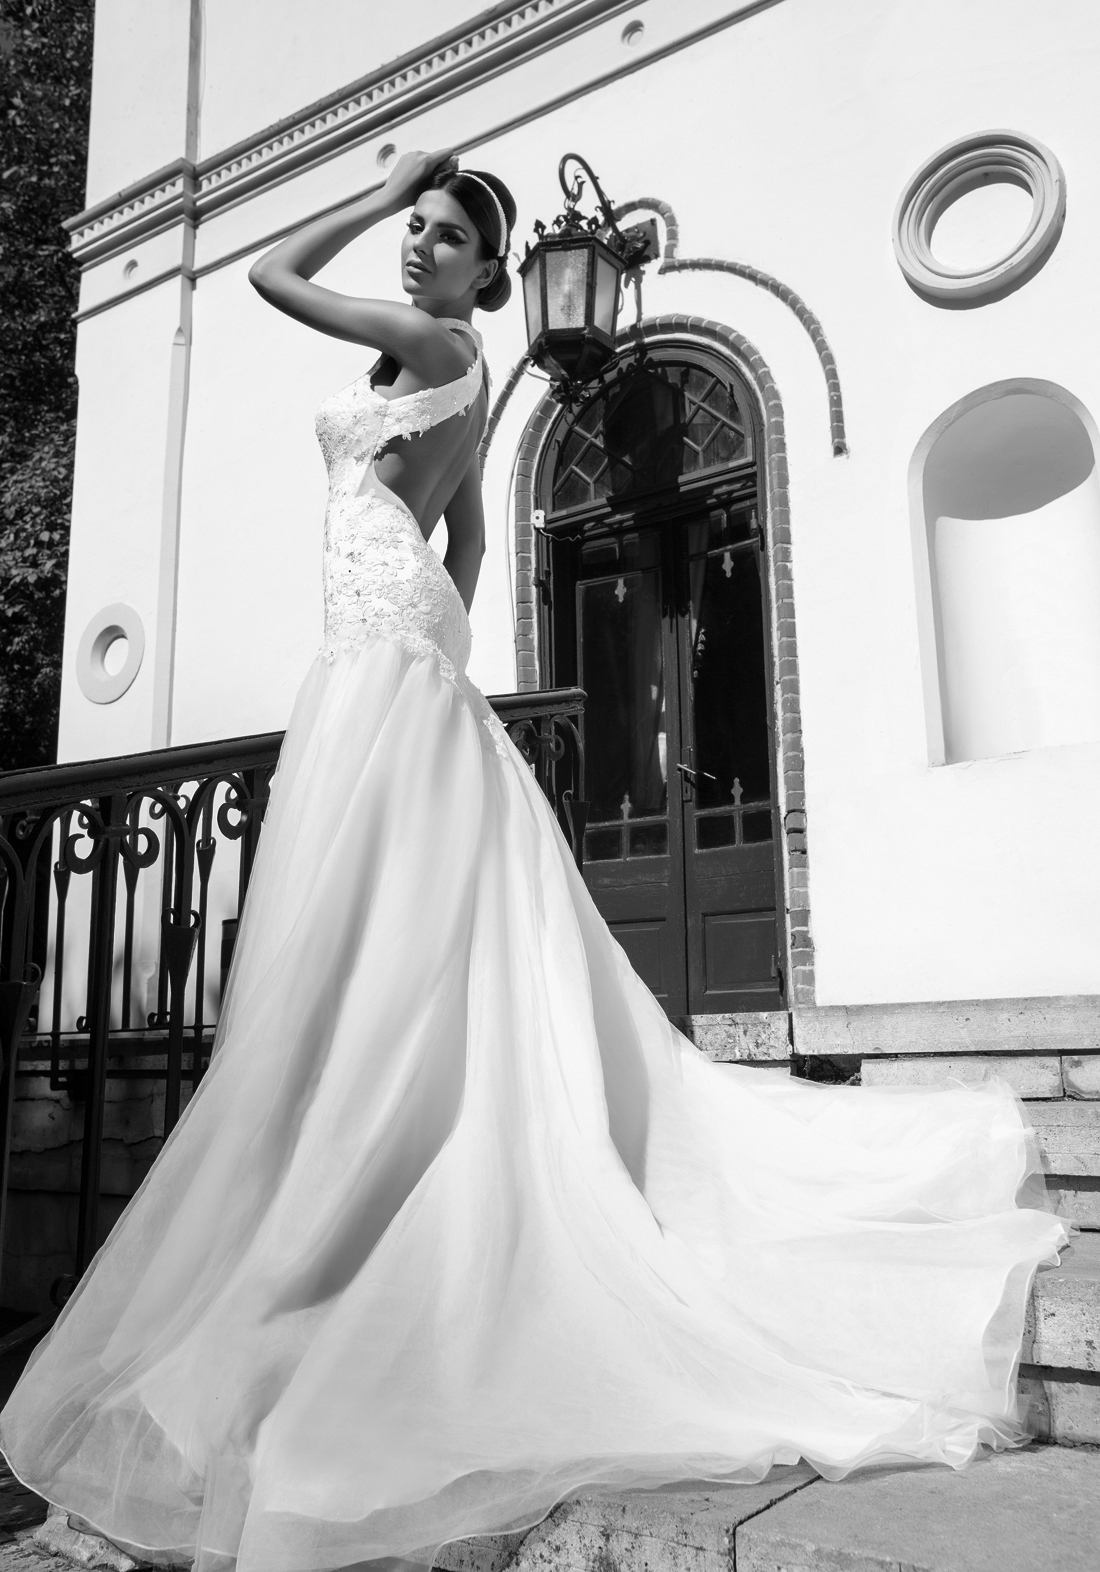 bien-savvy-wedding-dresses-2014-collection-36-01232014